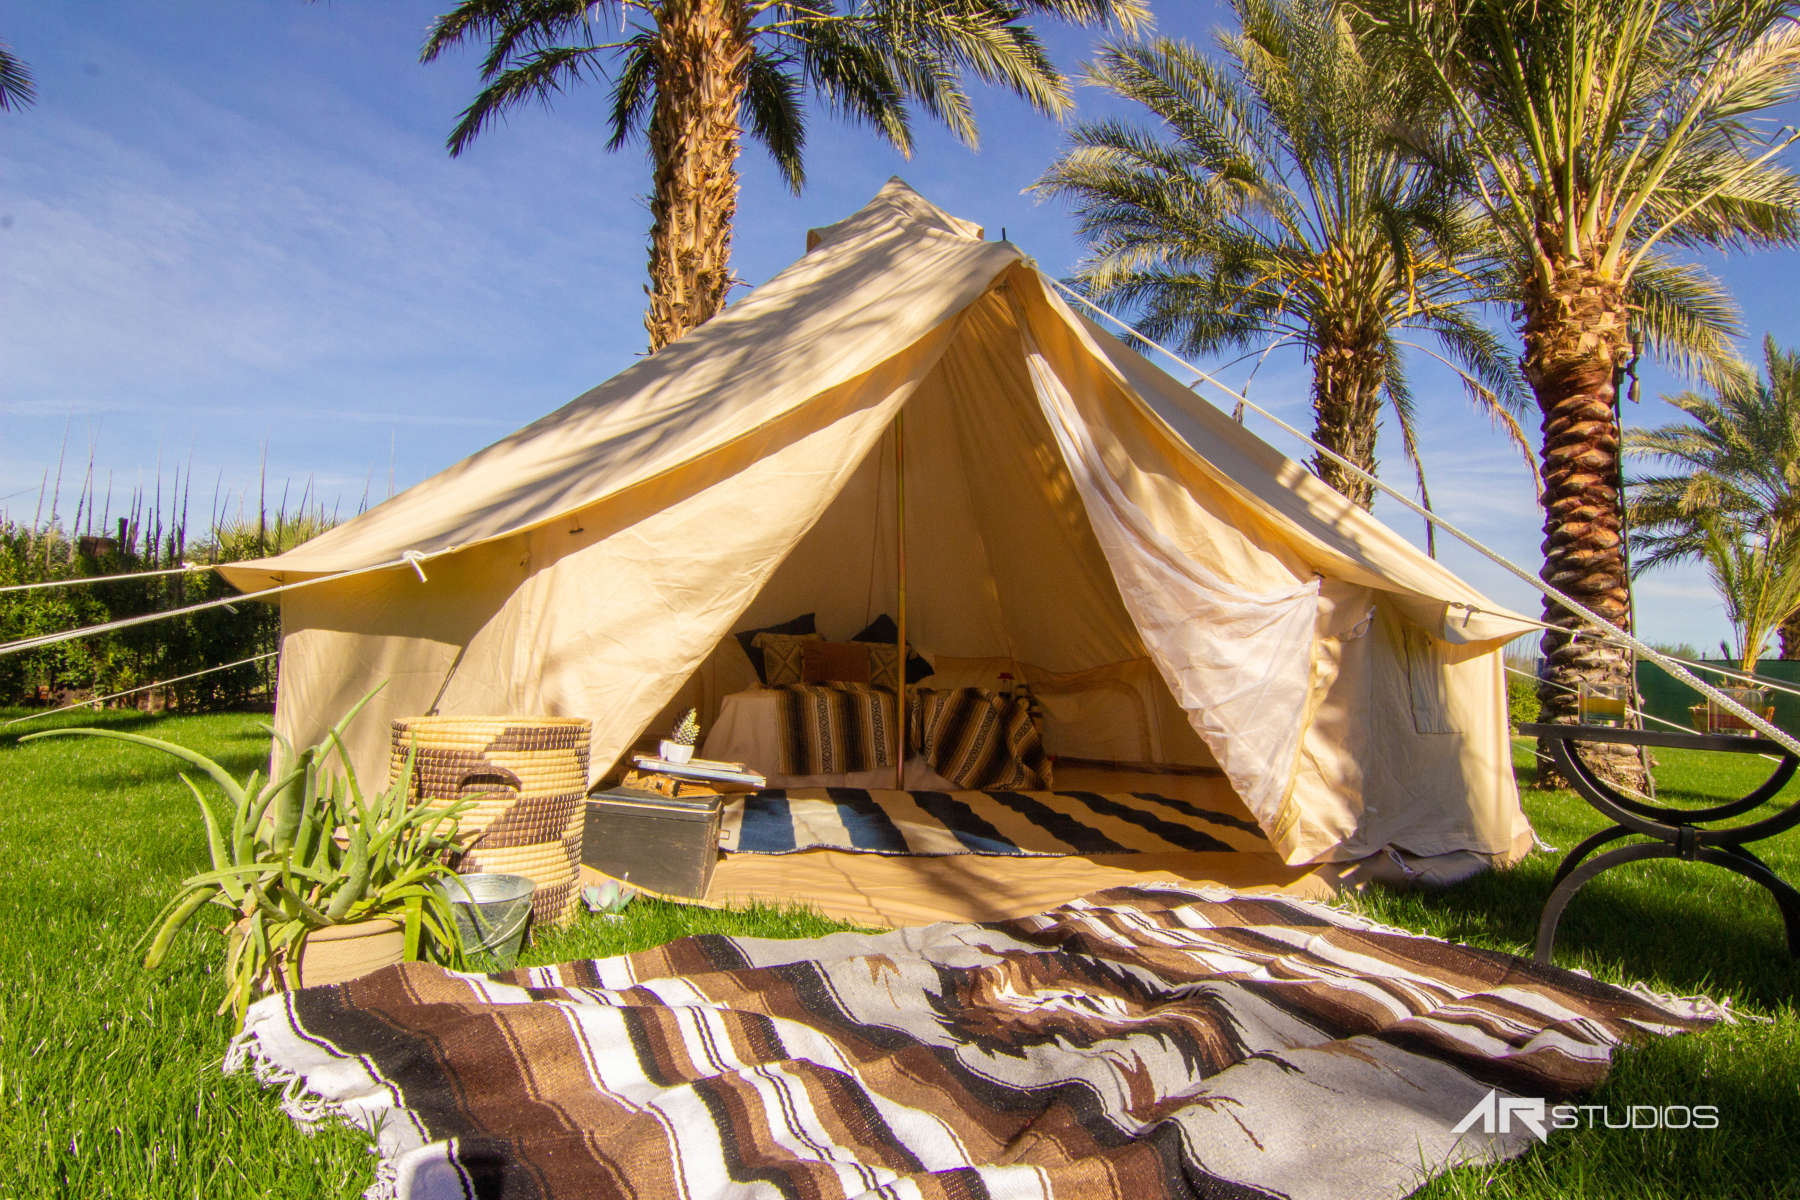 Superior Bell Tent Coachella Camp!